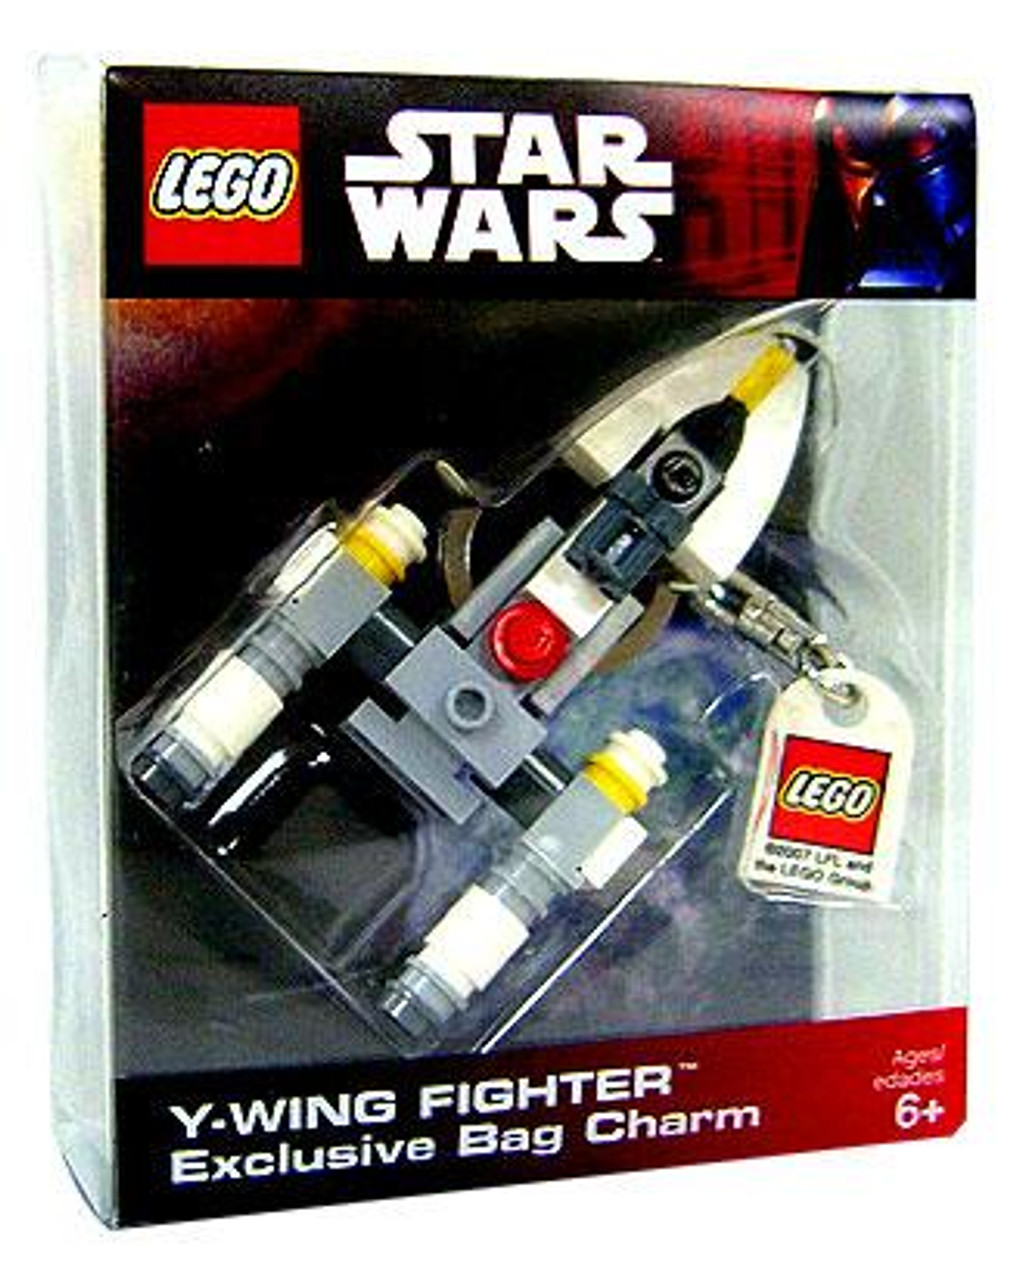 LEGO Star Wars A New Hope Y-Wing Fighter Bag Charm Exclusive